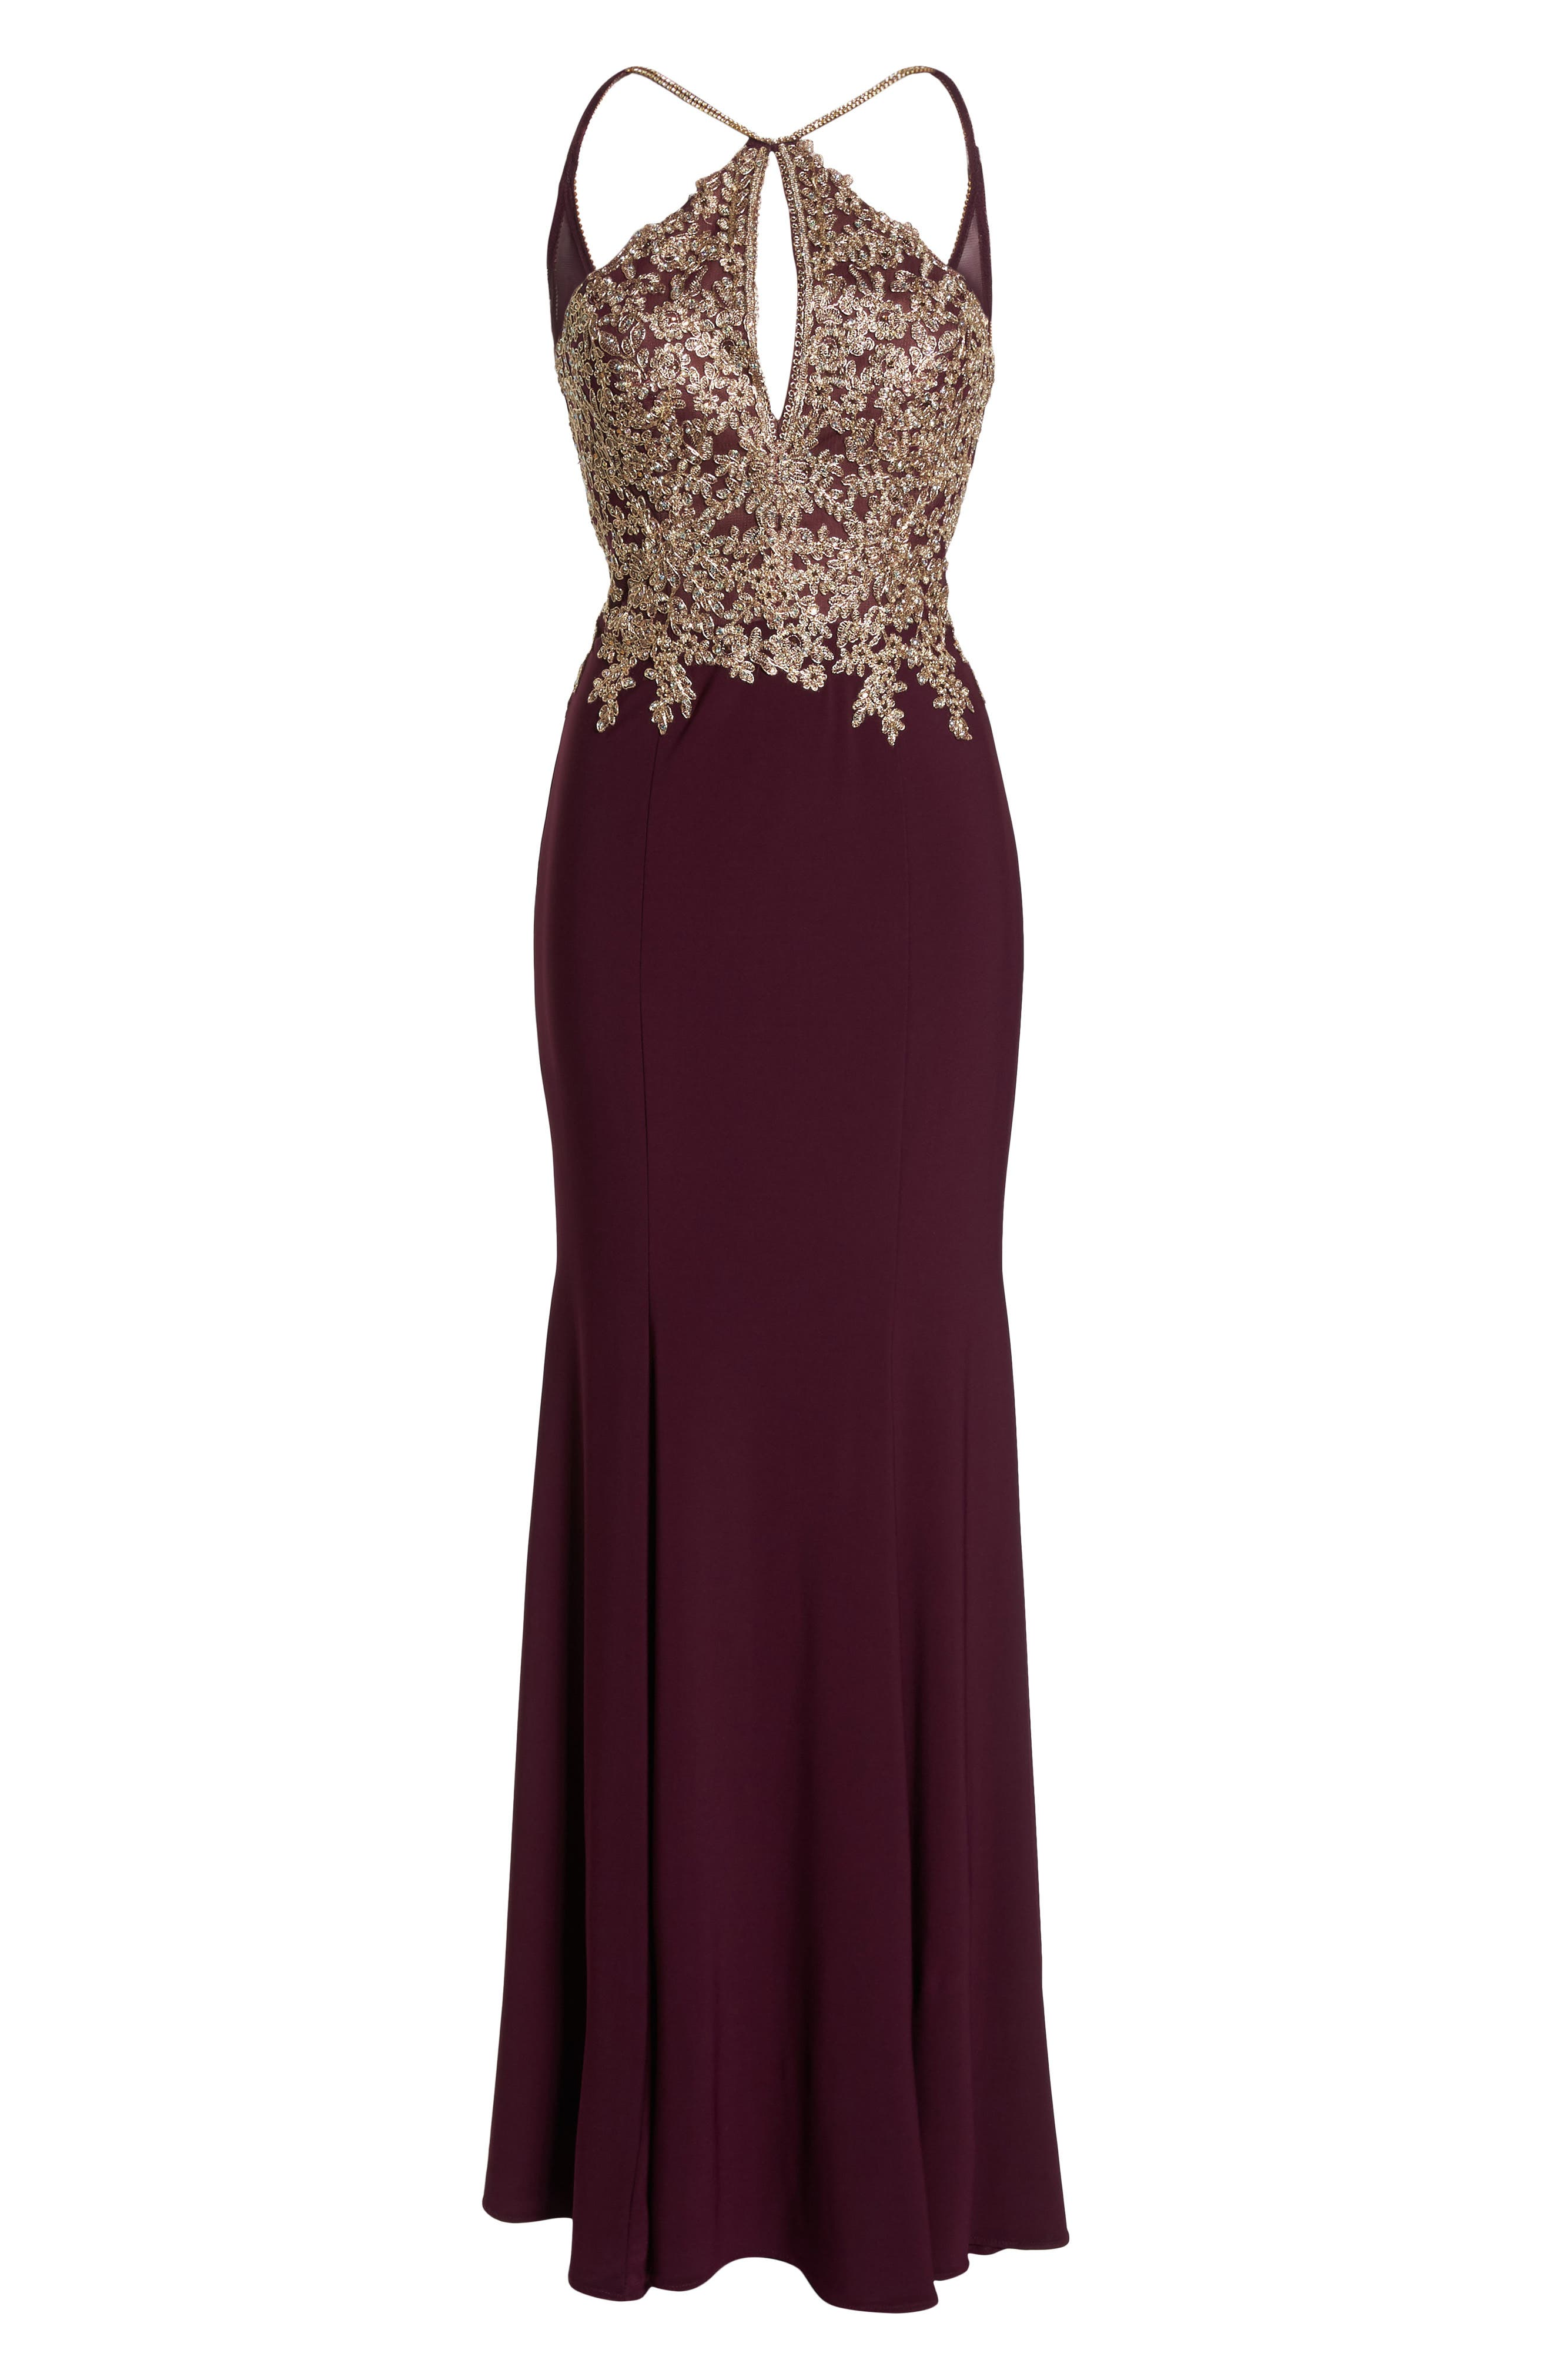 Gold Embroidery Halter Neck Gown,                             Alternate thumbnail 6, color,                             WINE/ GOLD